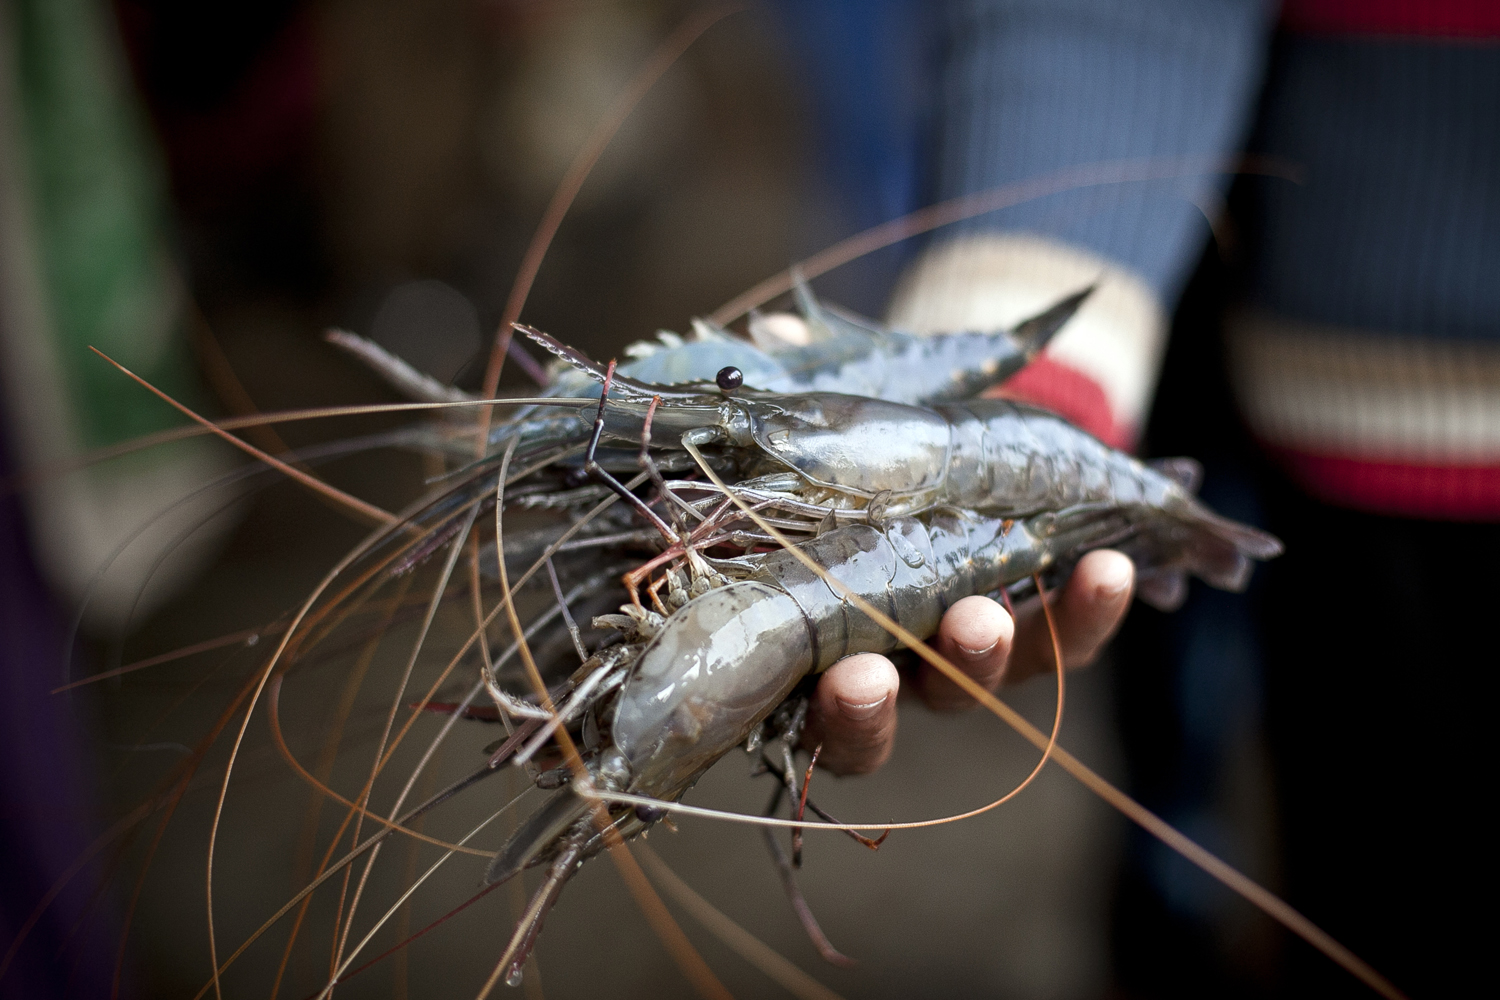 Bangladesh's Shrimp Industry Accused Of Worker Exploitation